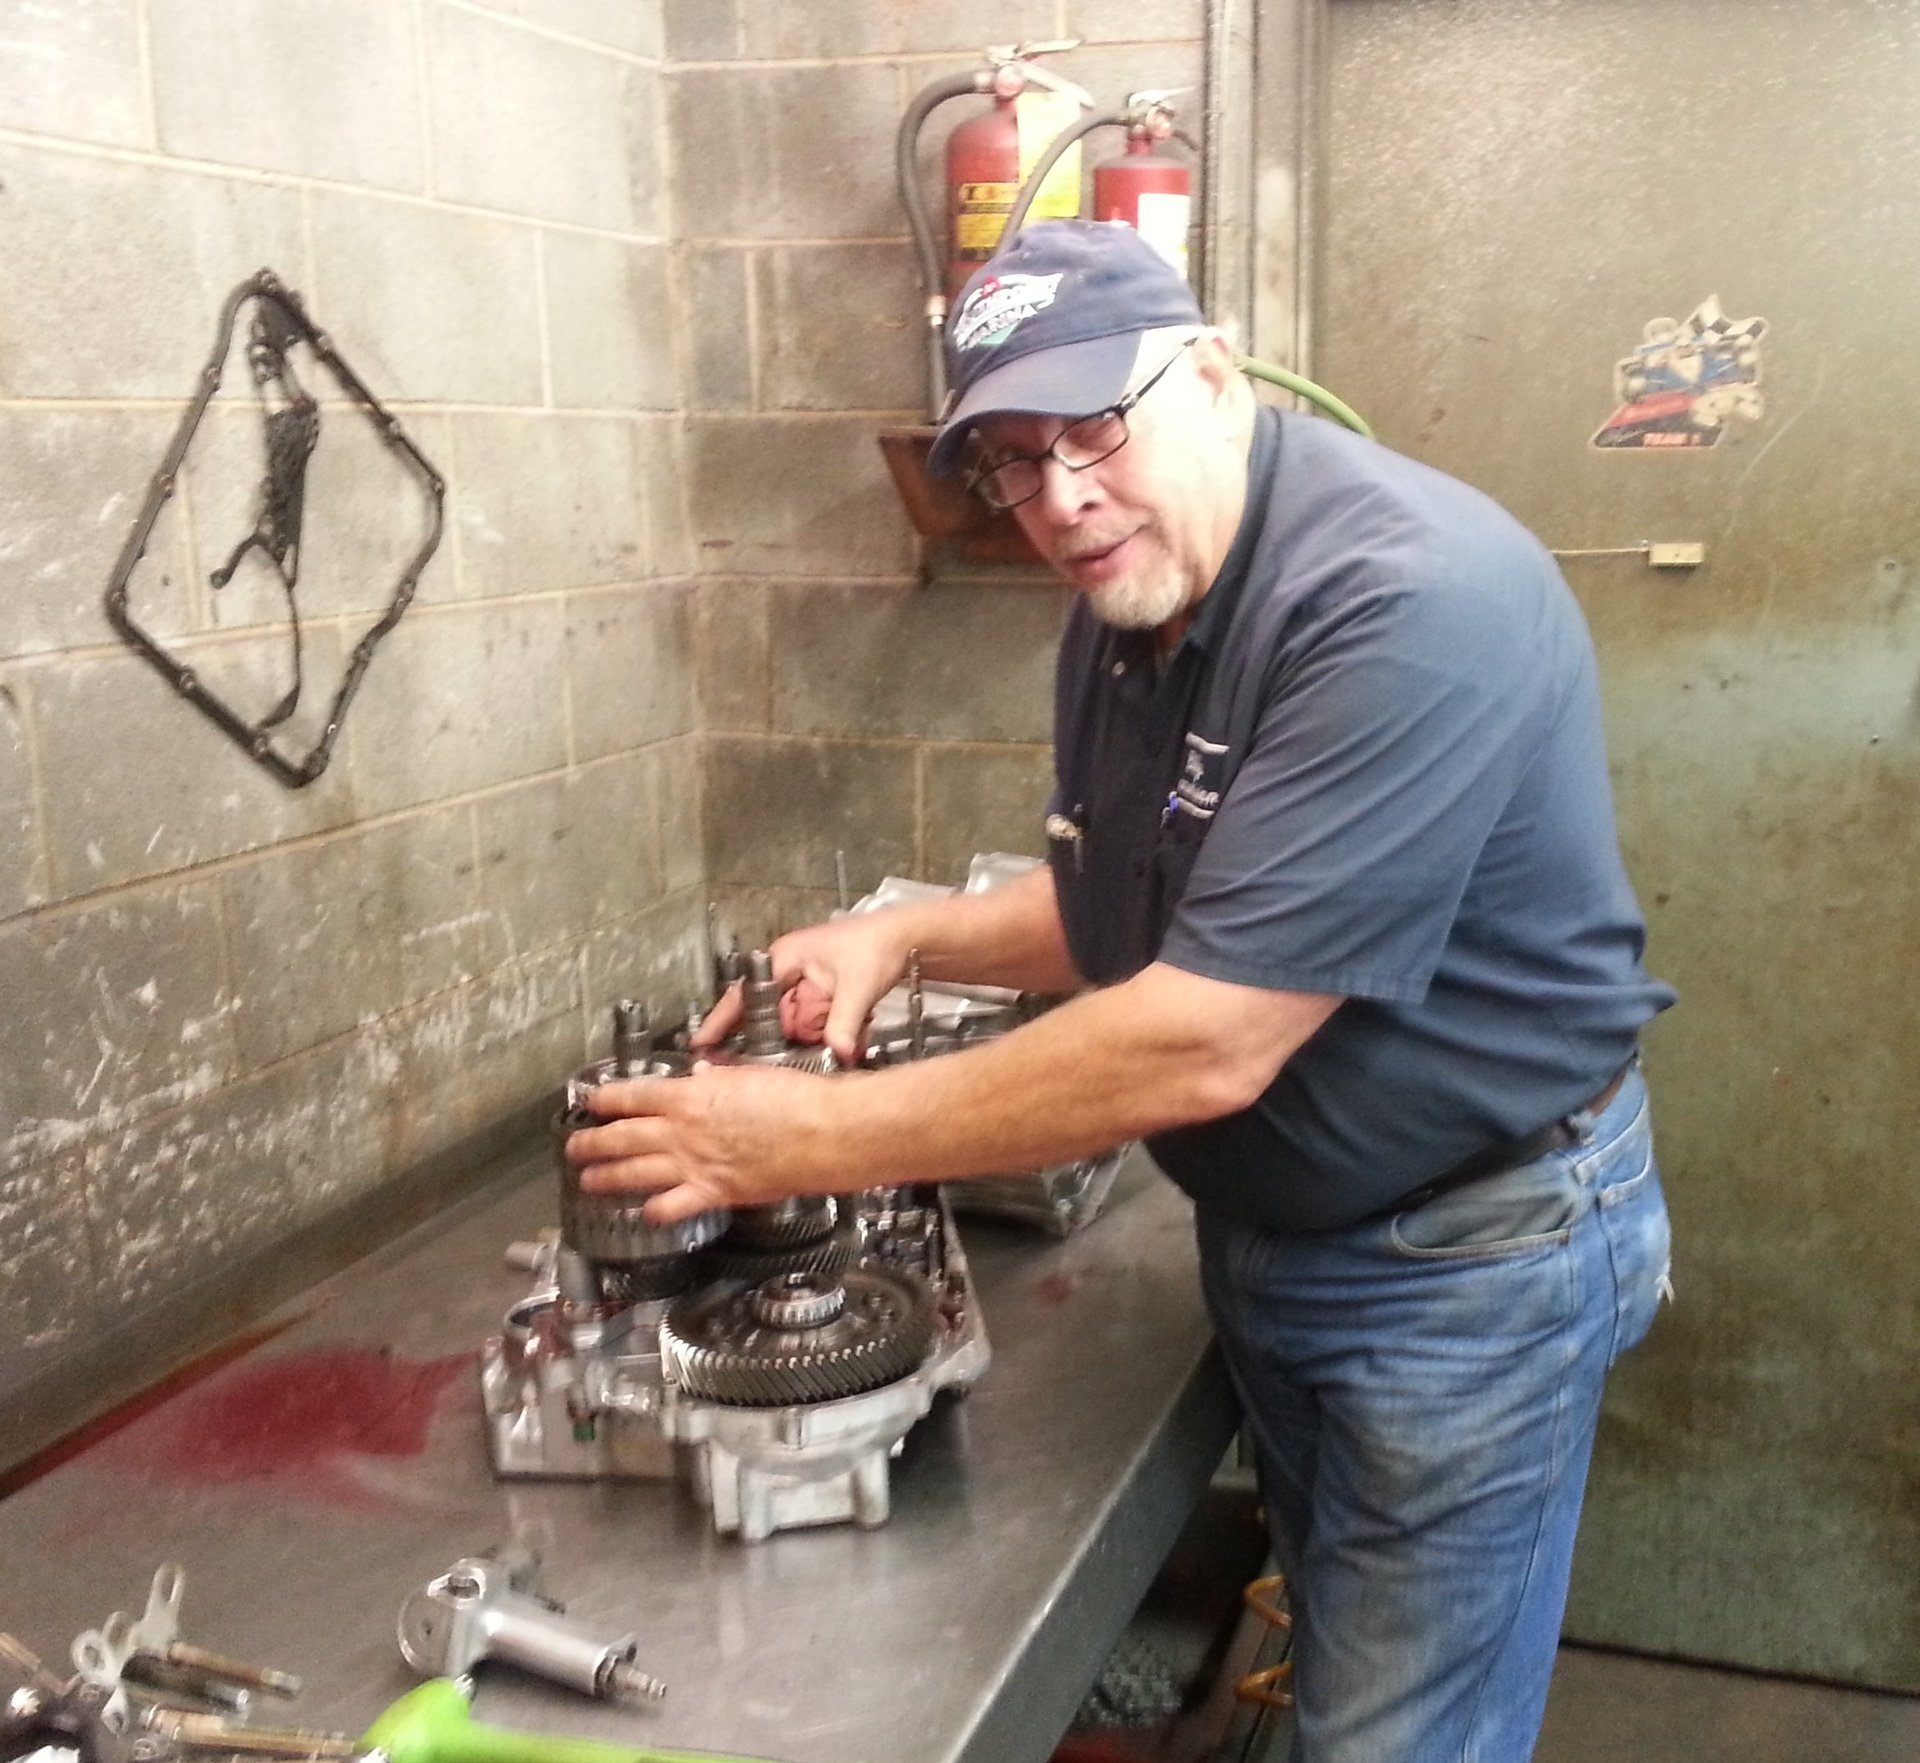 Servicing done to the transmission of the automobile in High Point, NC